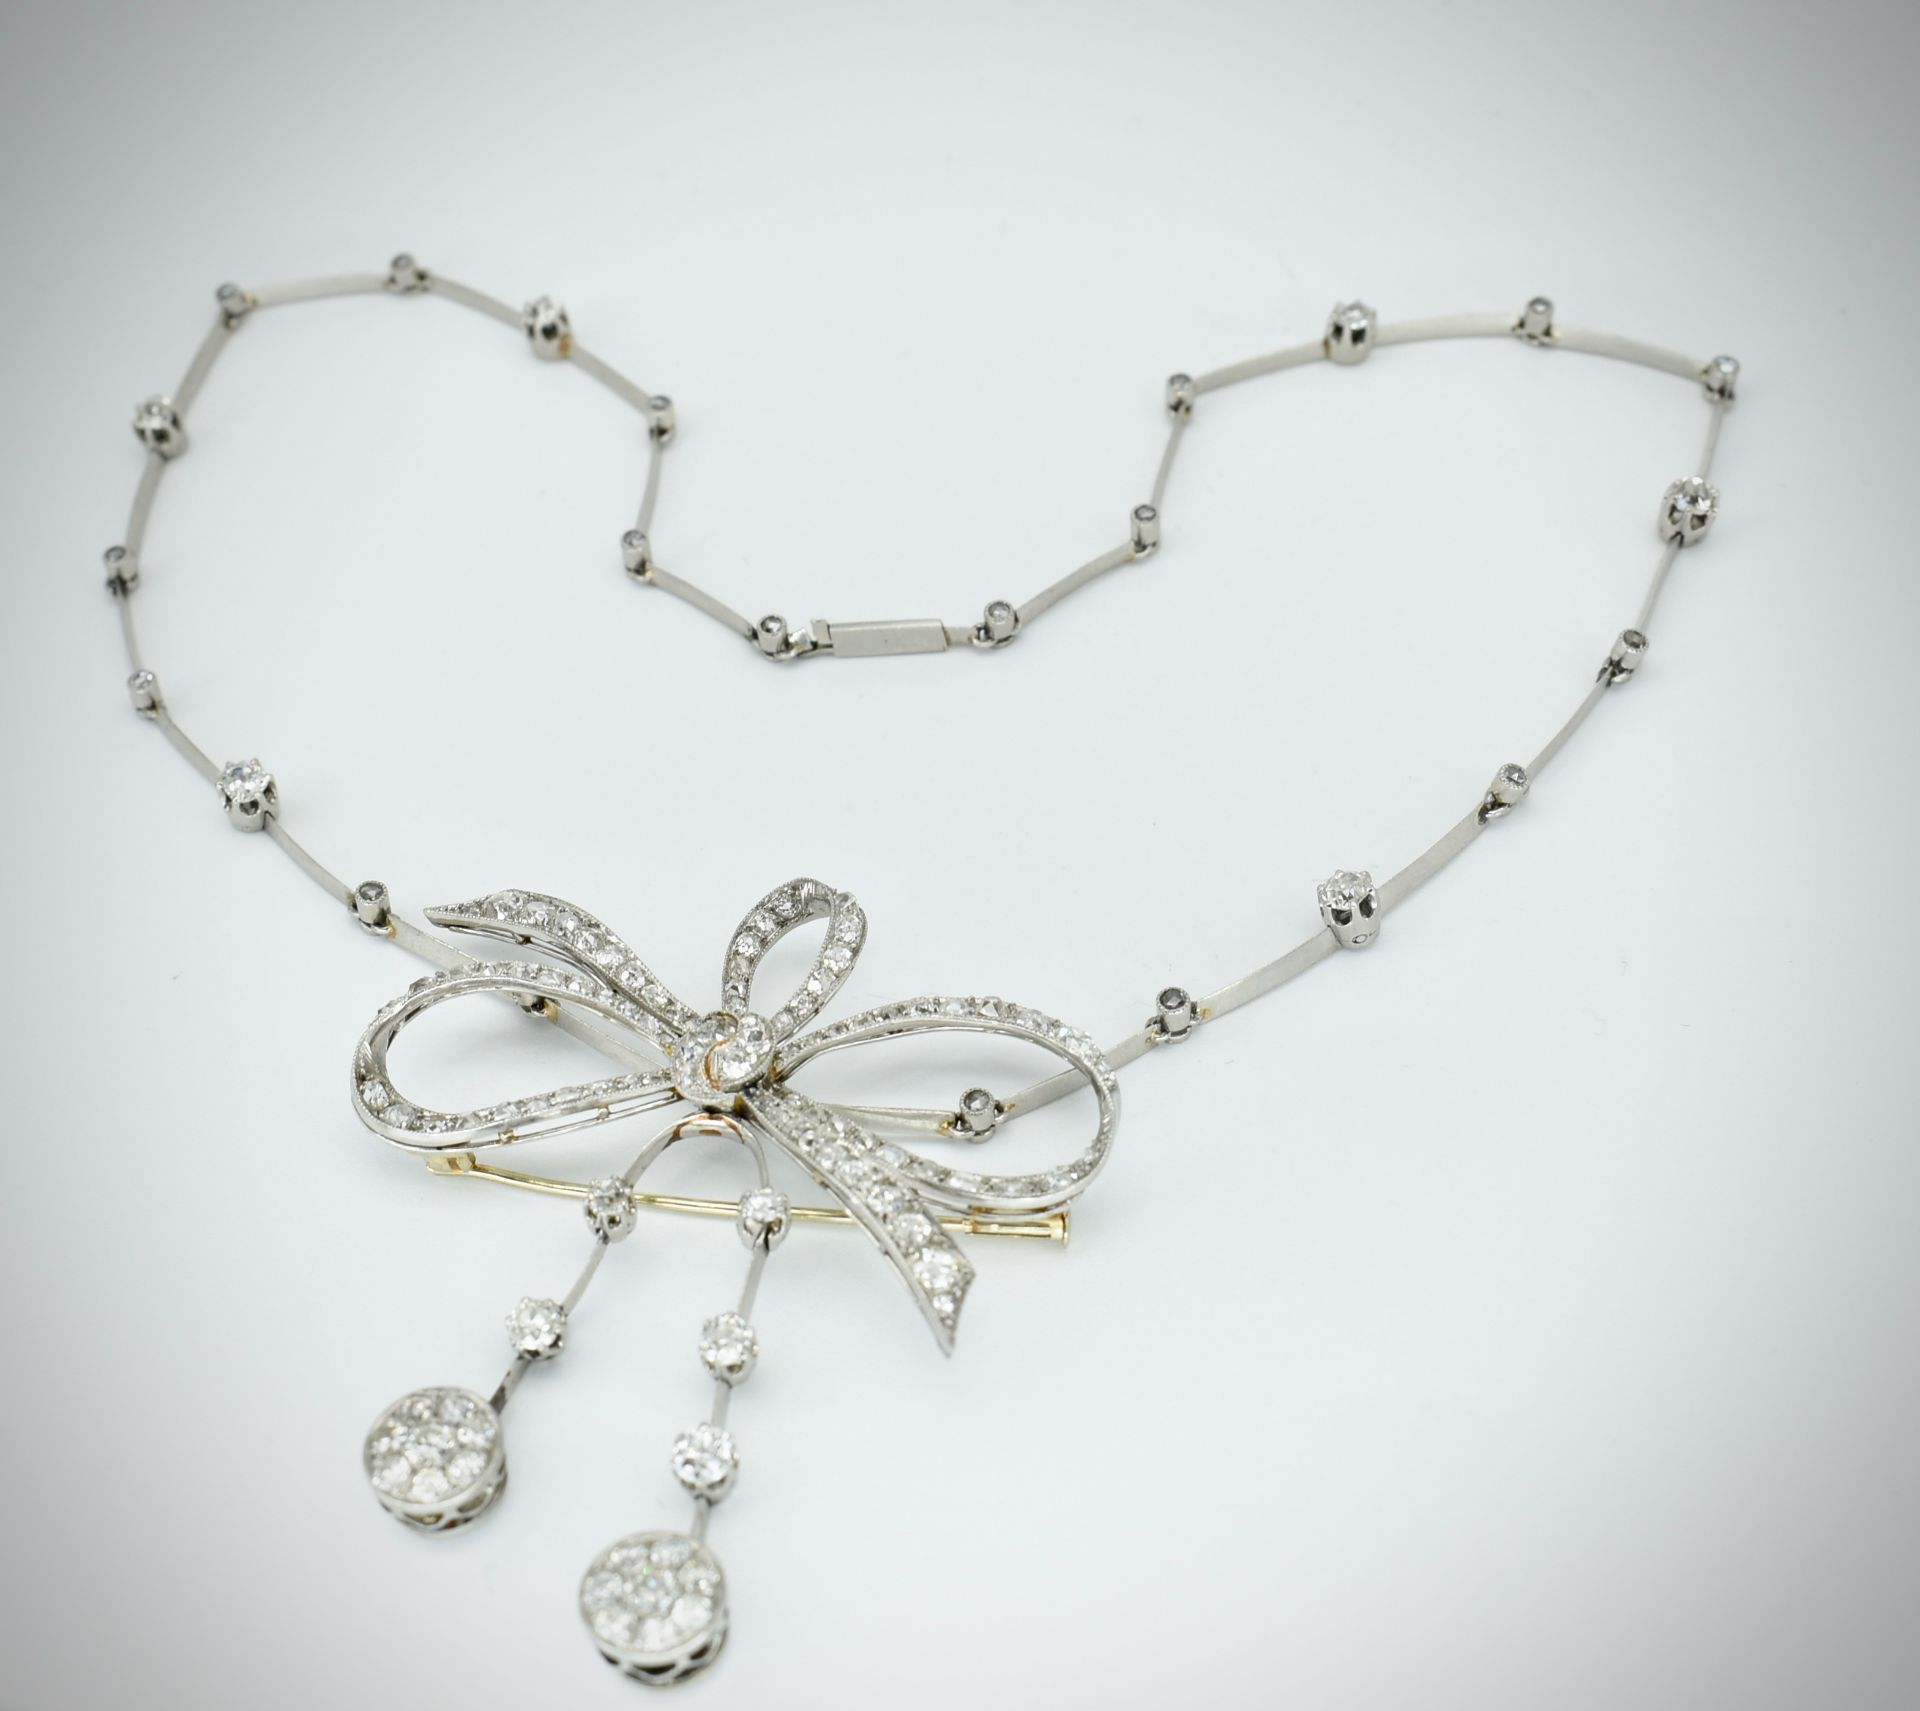 French 18ct Gold Platinum & Diamond Collar Necklace - Image 6 of 9